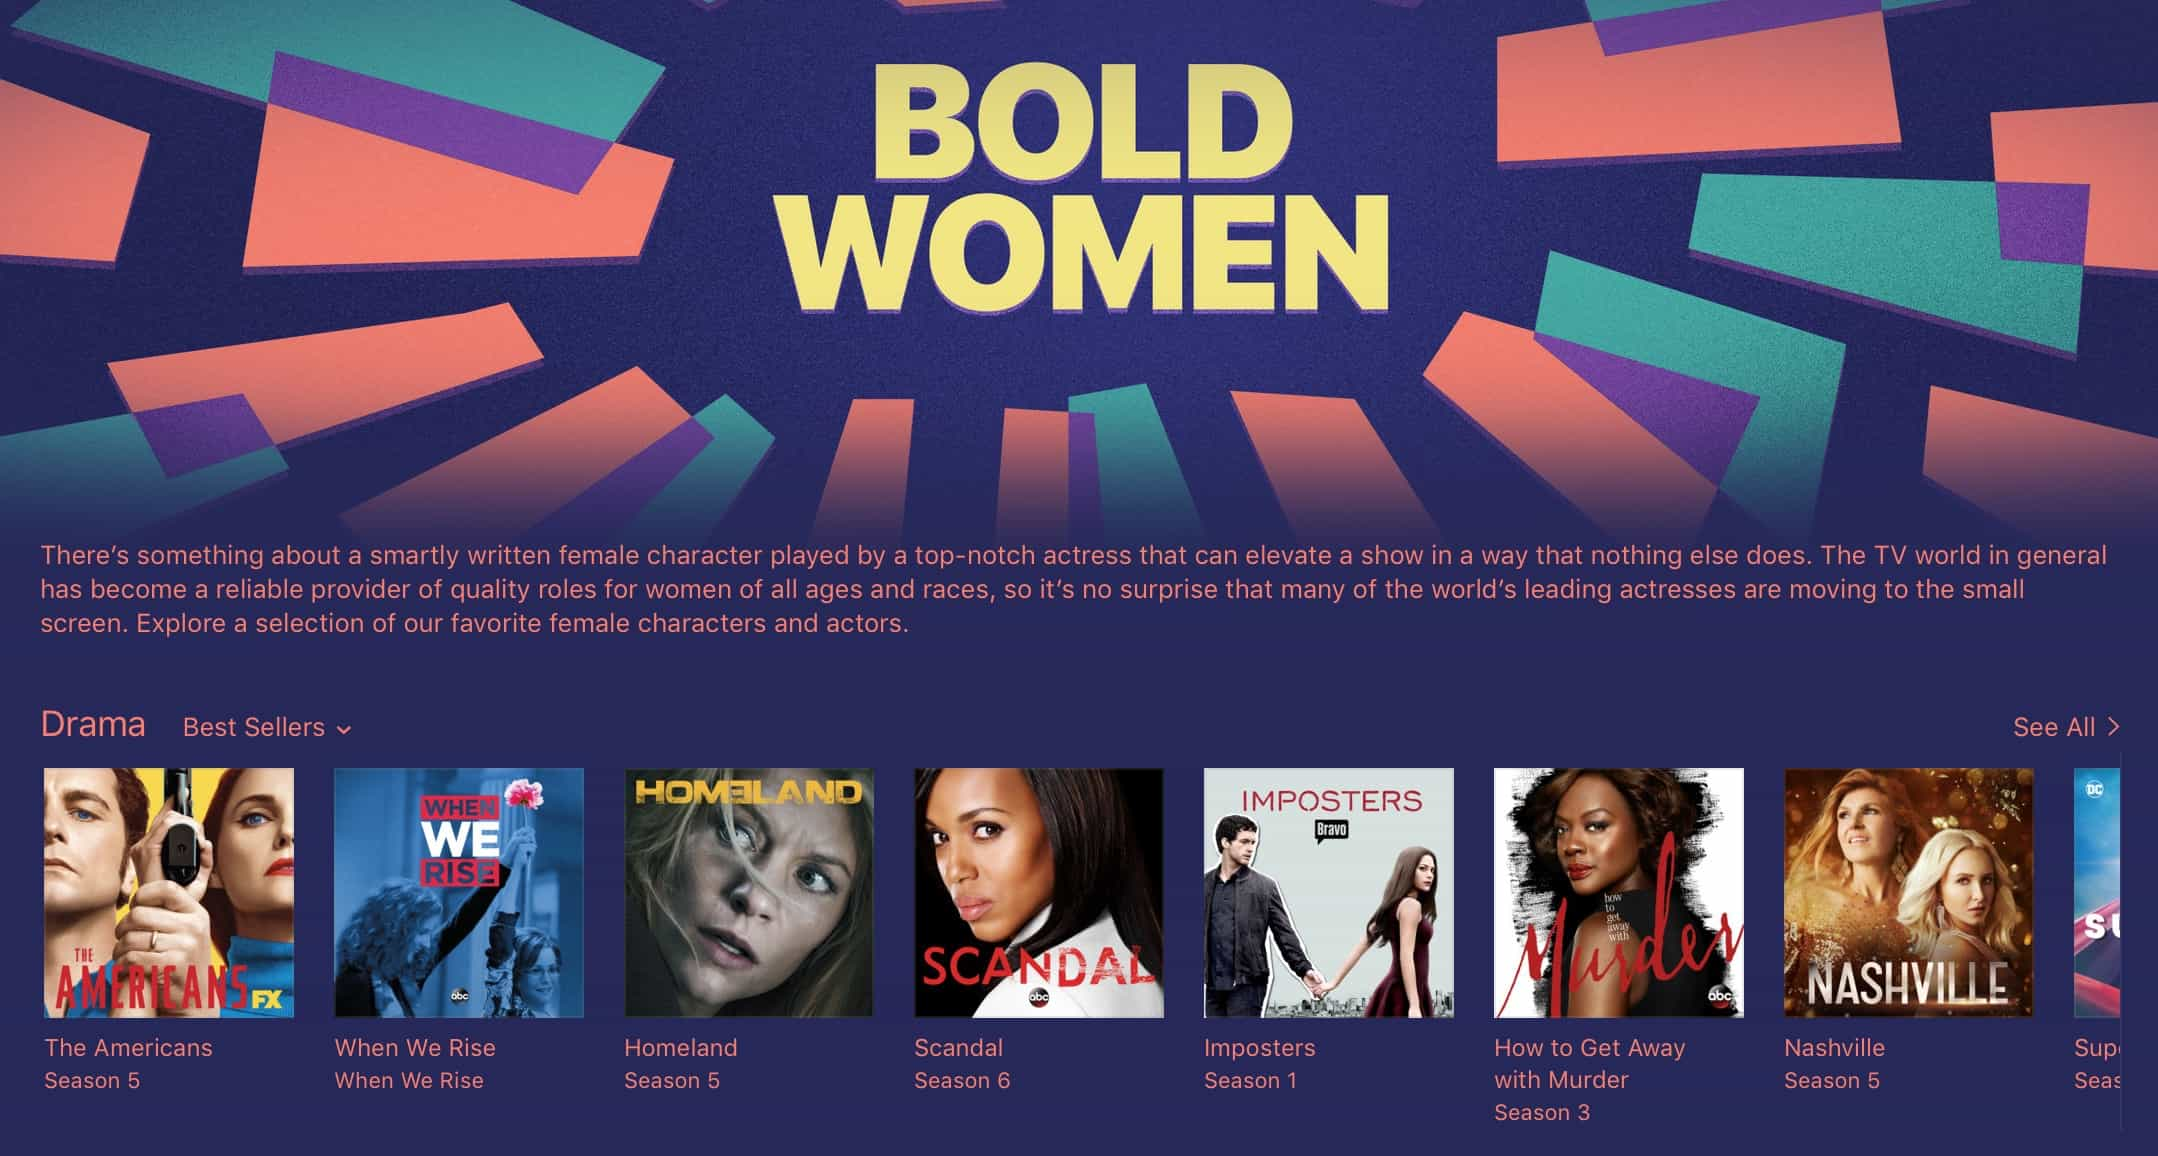 iTunes is promoting movies and TV shows with strong female characters.